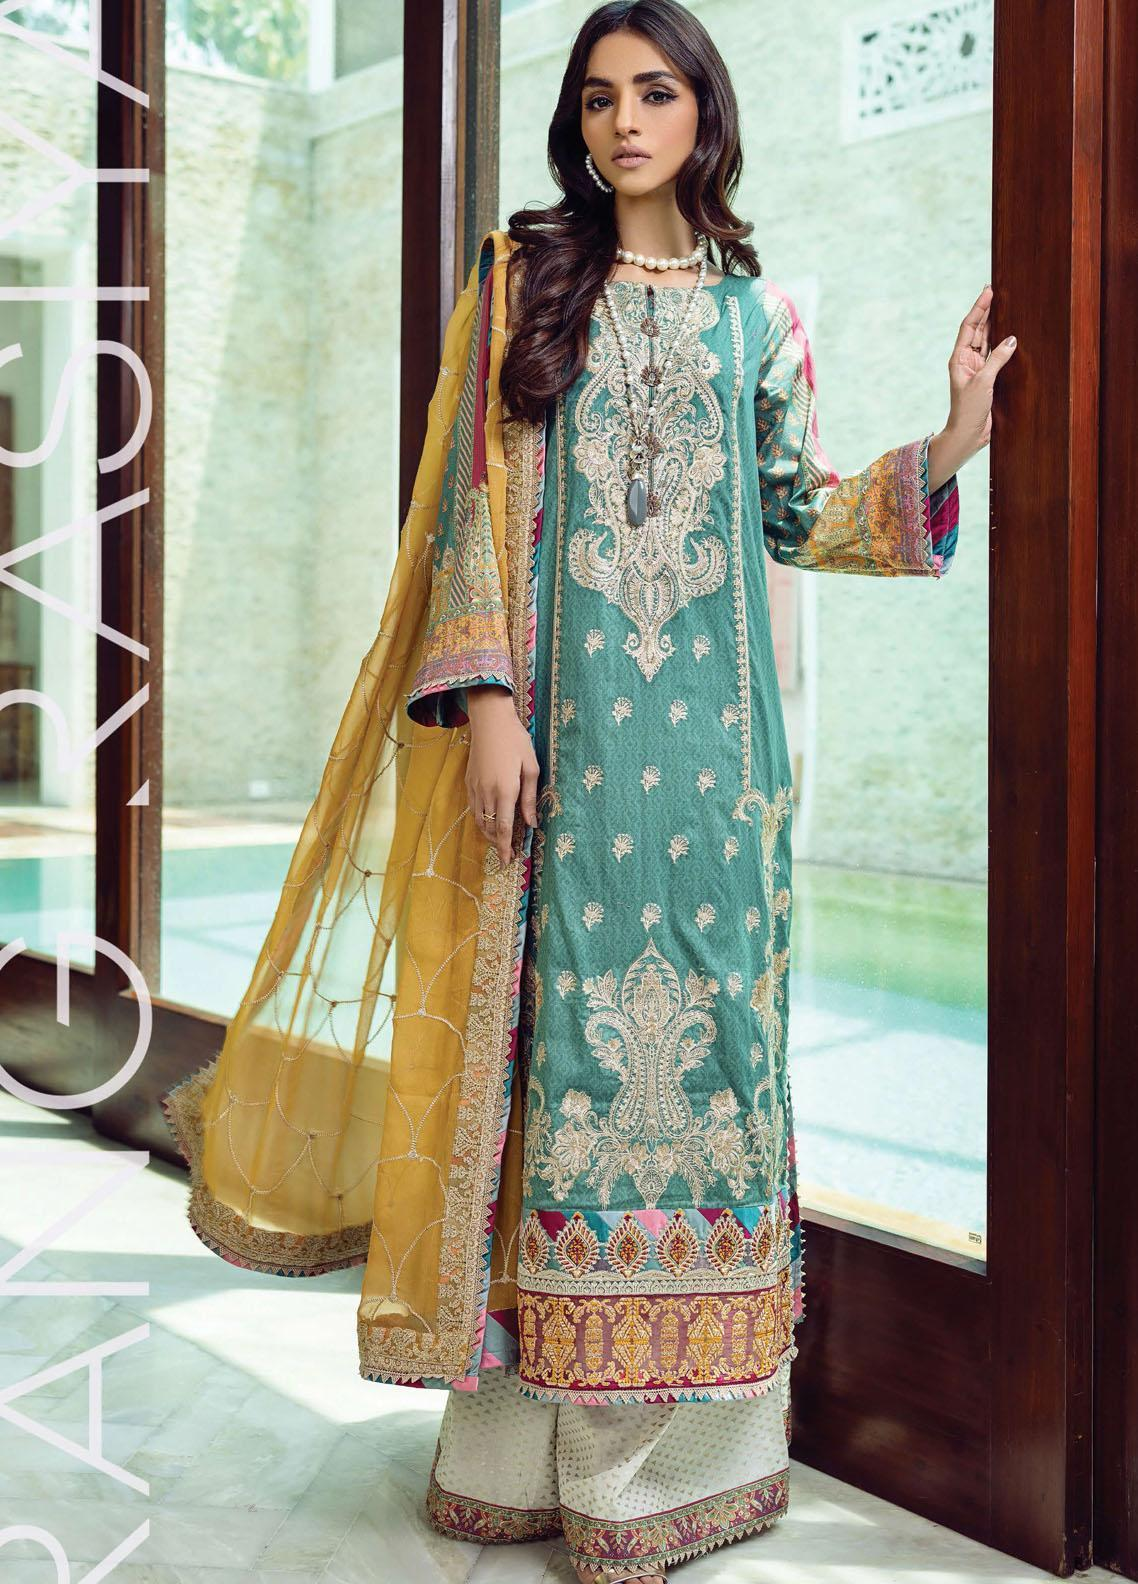 Florence By Rang Rasiya Embroidered Lawn Suits Unstitched 3 Piece RR21FF 11 Rabt - Festive Collection